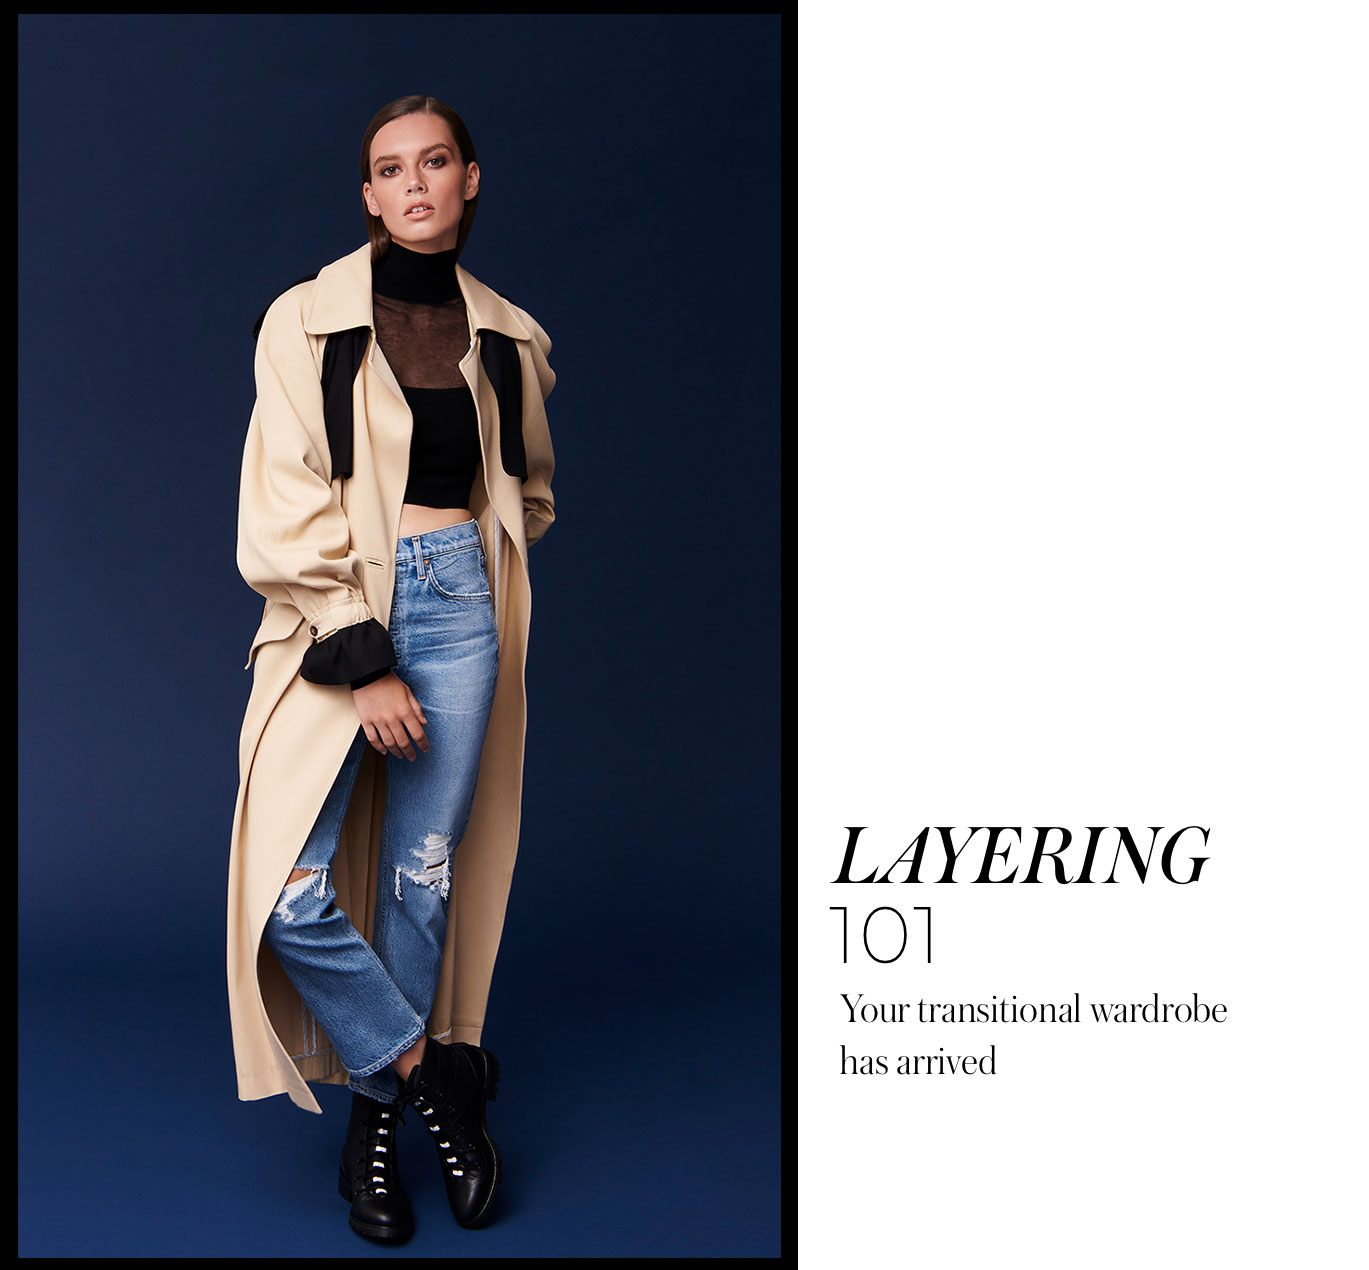 Layering 101 Your transitional wardrobe has arrived